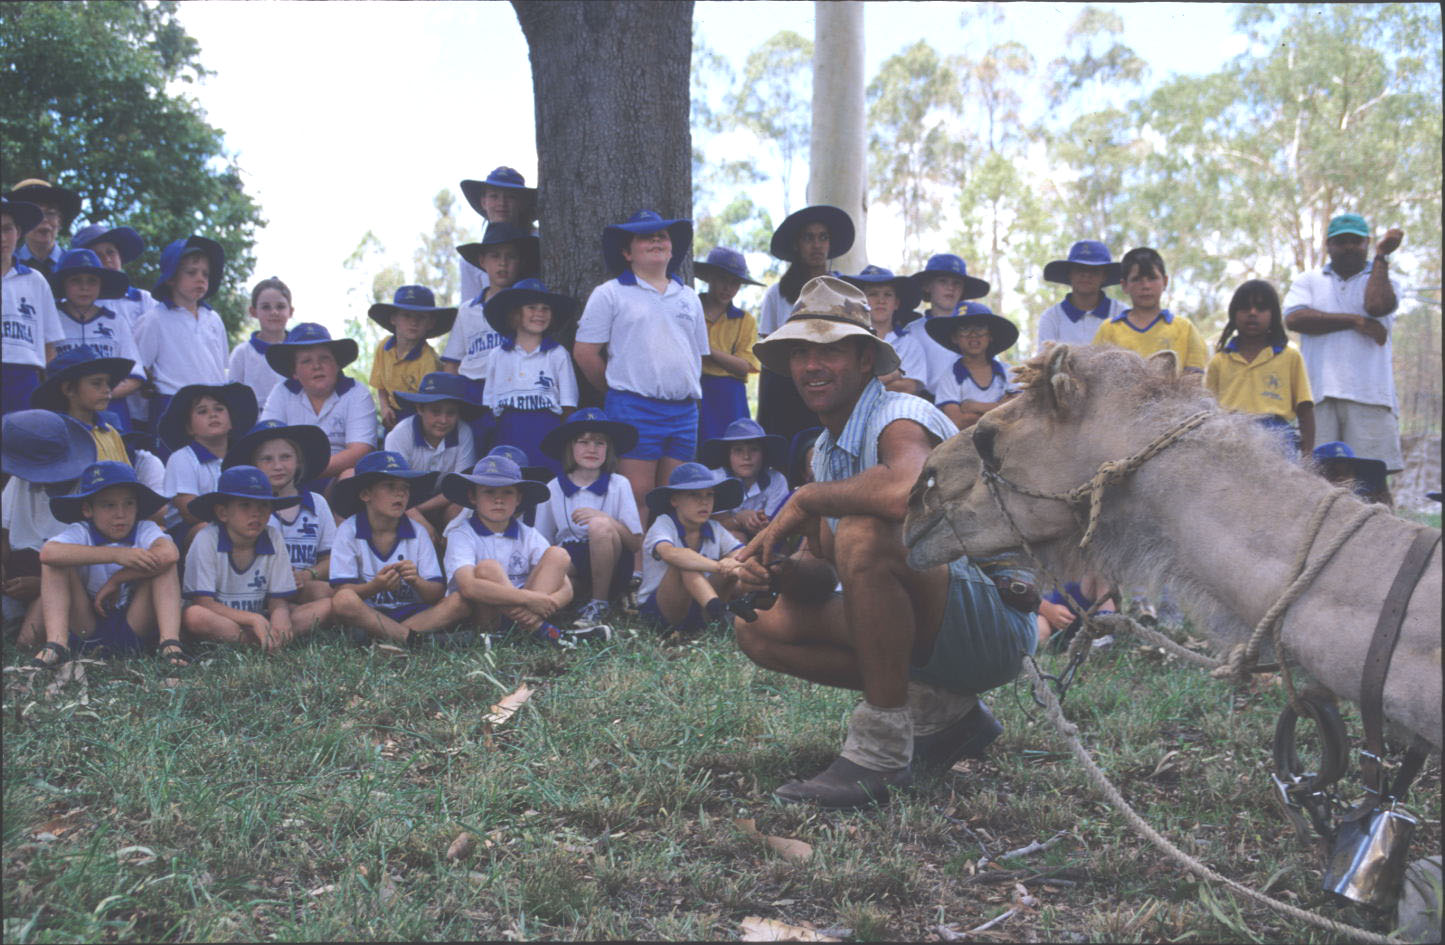 A stop with schoolkids in QLD.